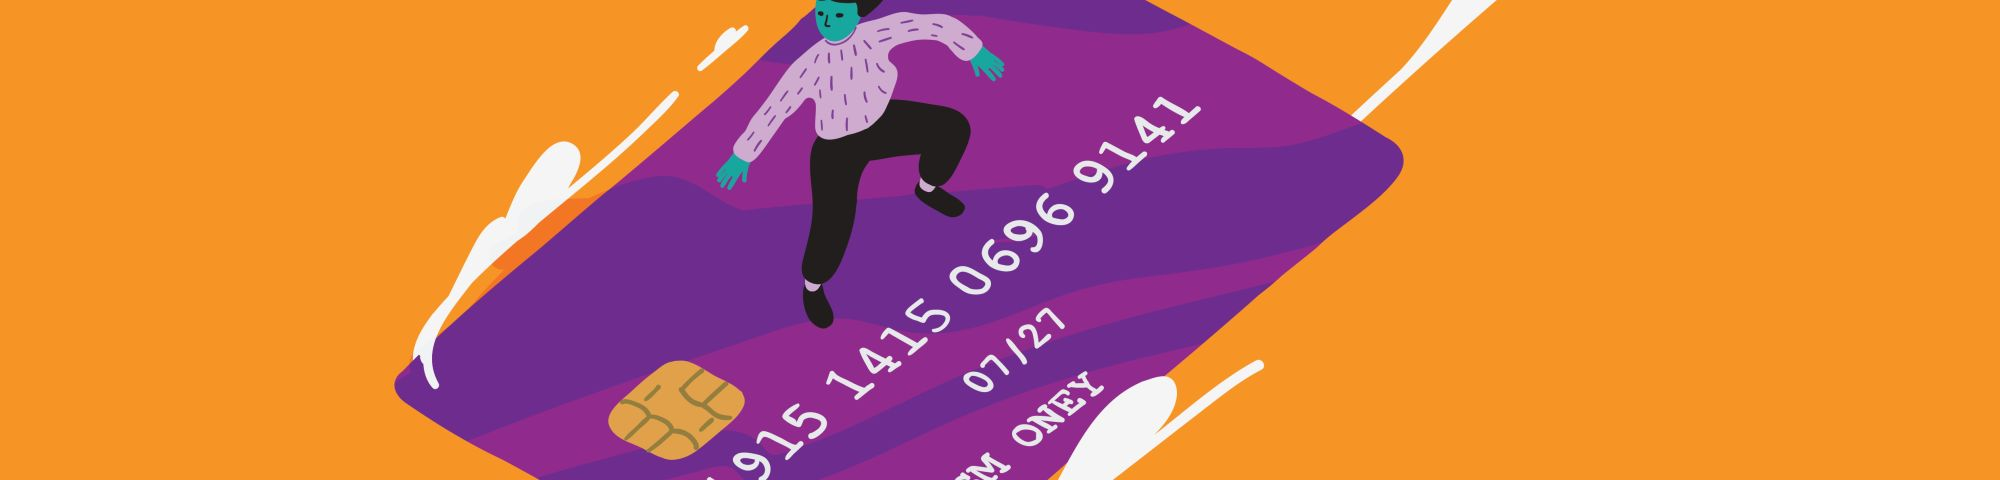 An illustration of someone surfing on a credit card